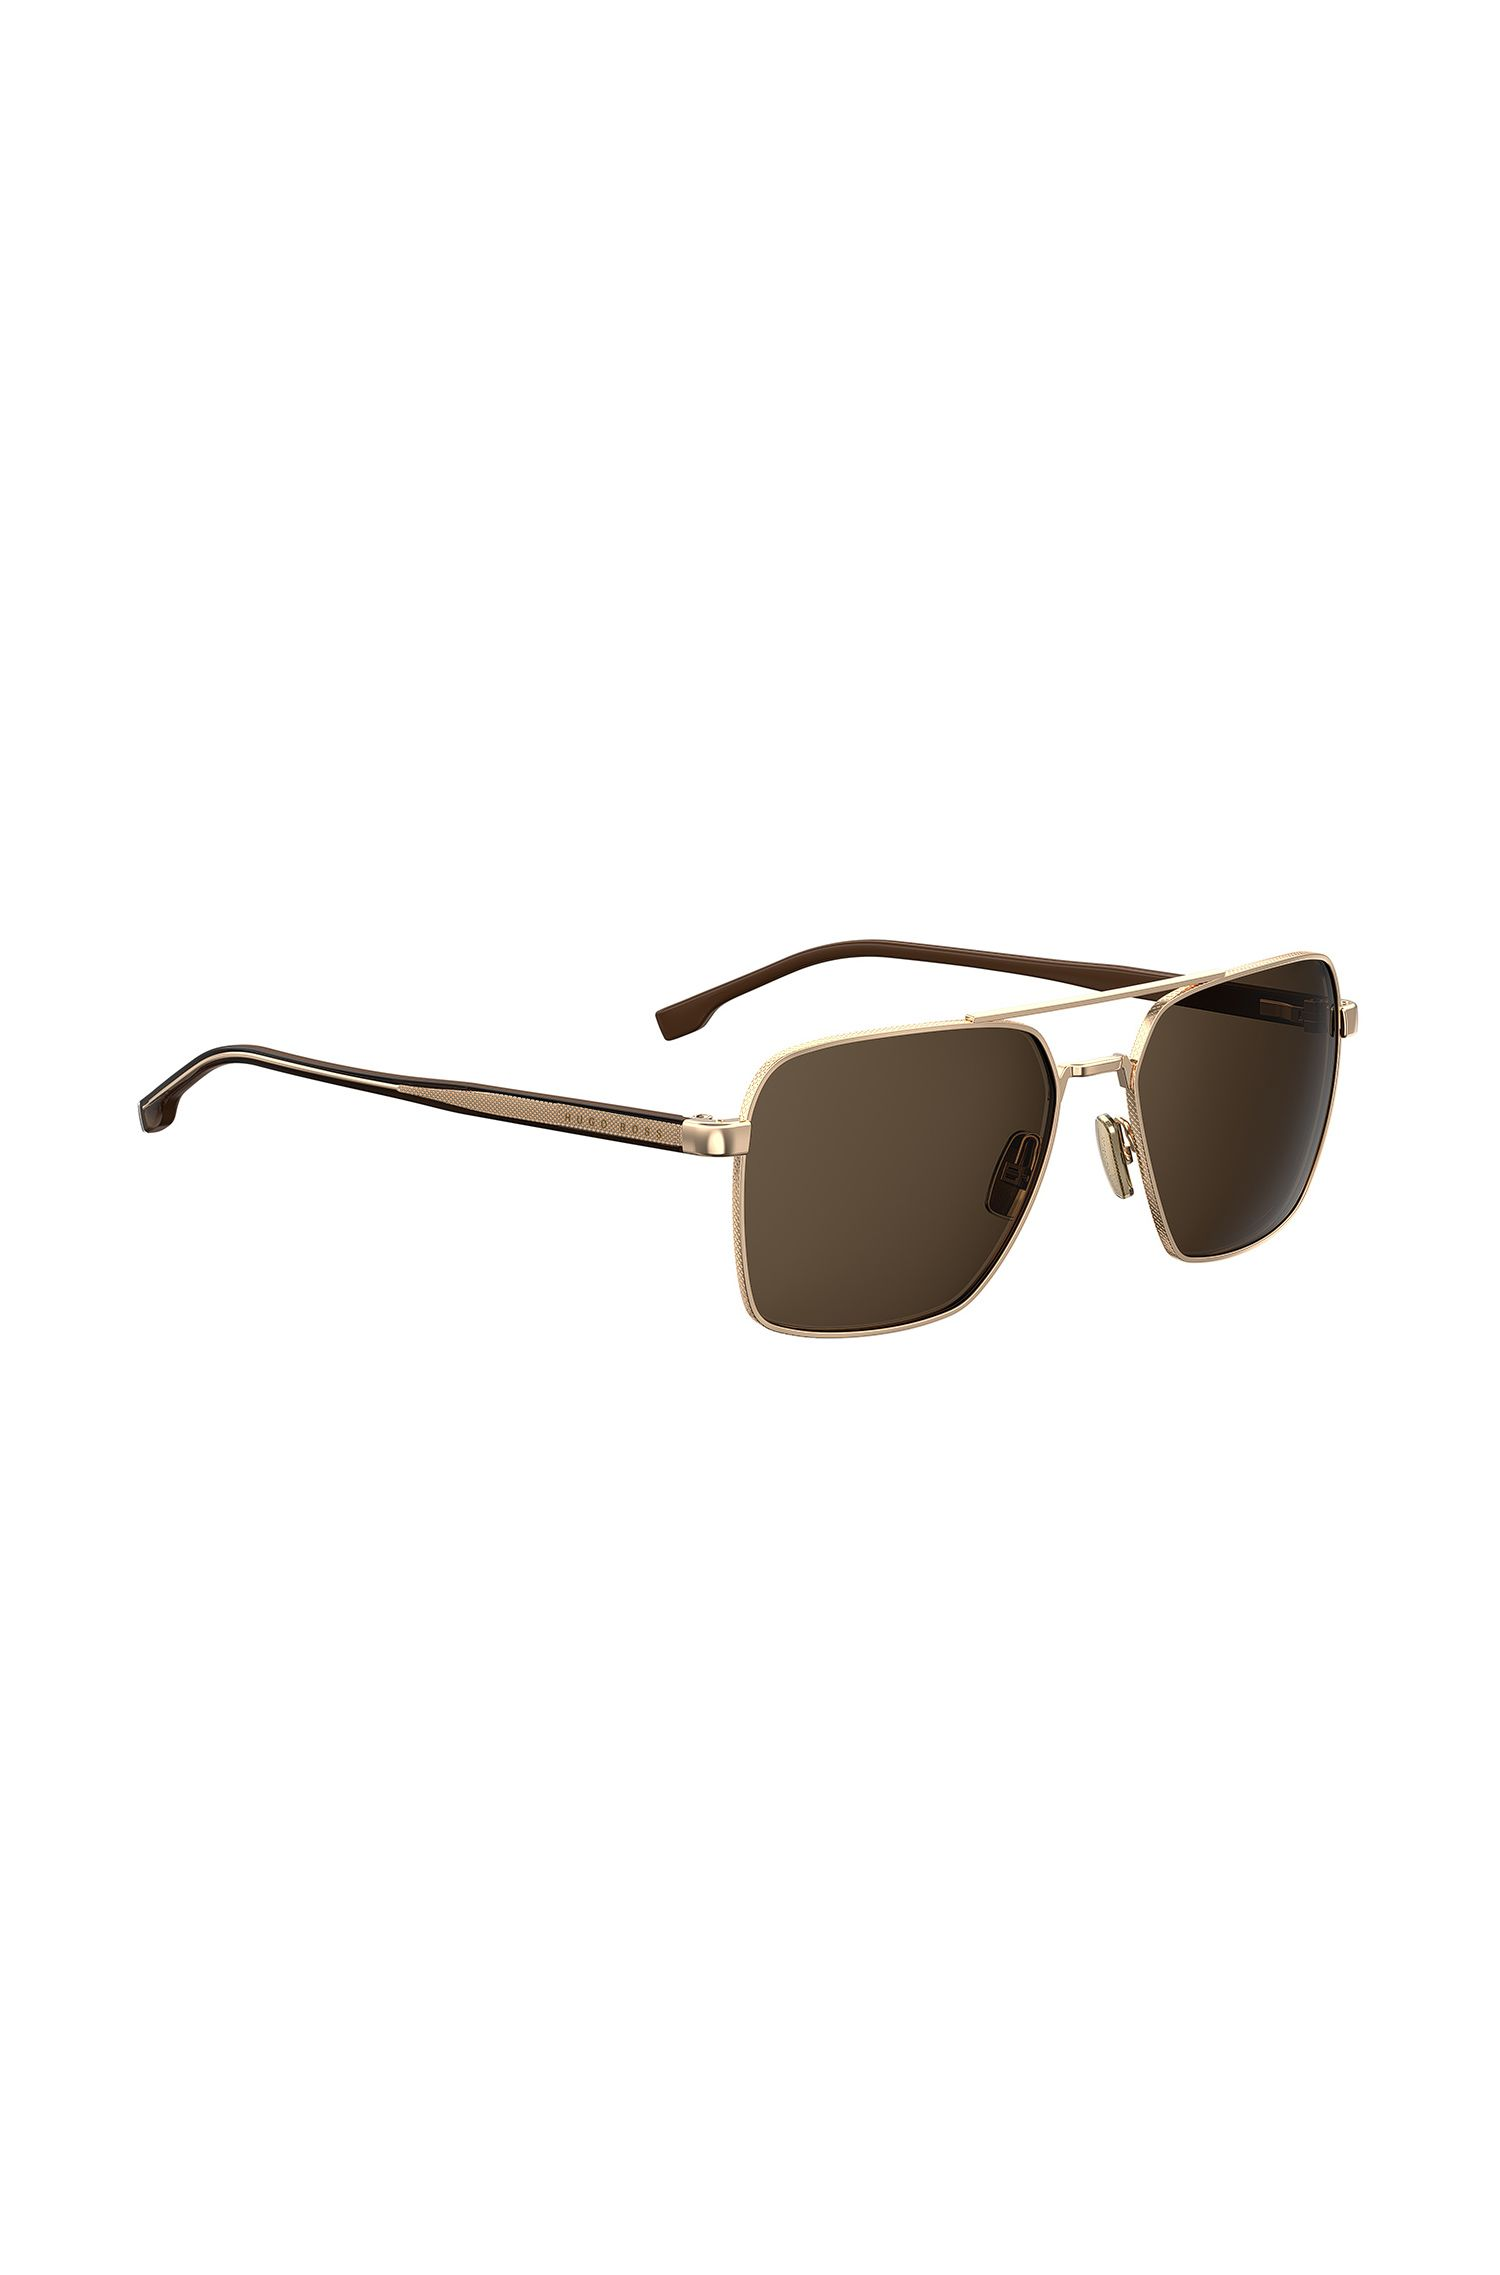 Golden-framed rectangular sunglasses with Optyl temples, Assorted-Pre-Pack